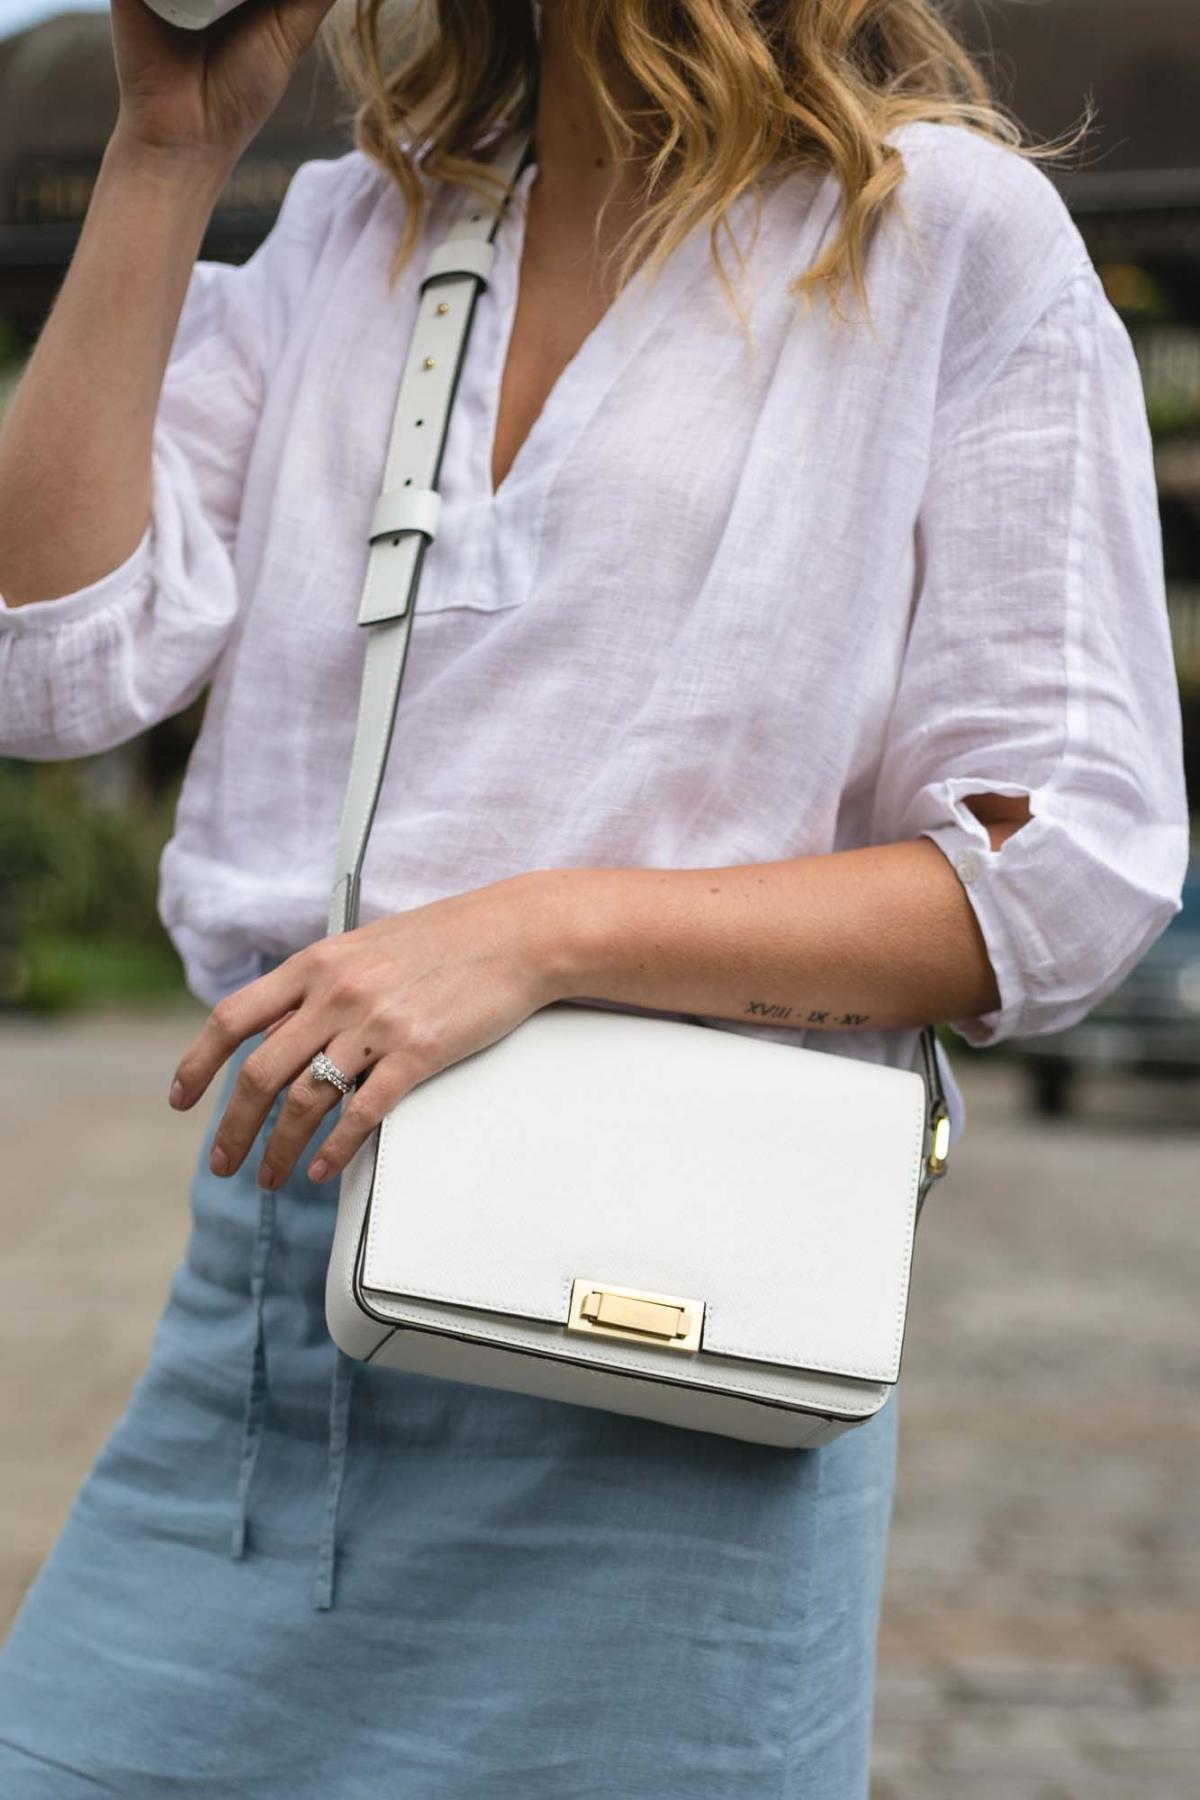 Jaeger white linen shirt, white cross body bag, casual weekend outfit